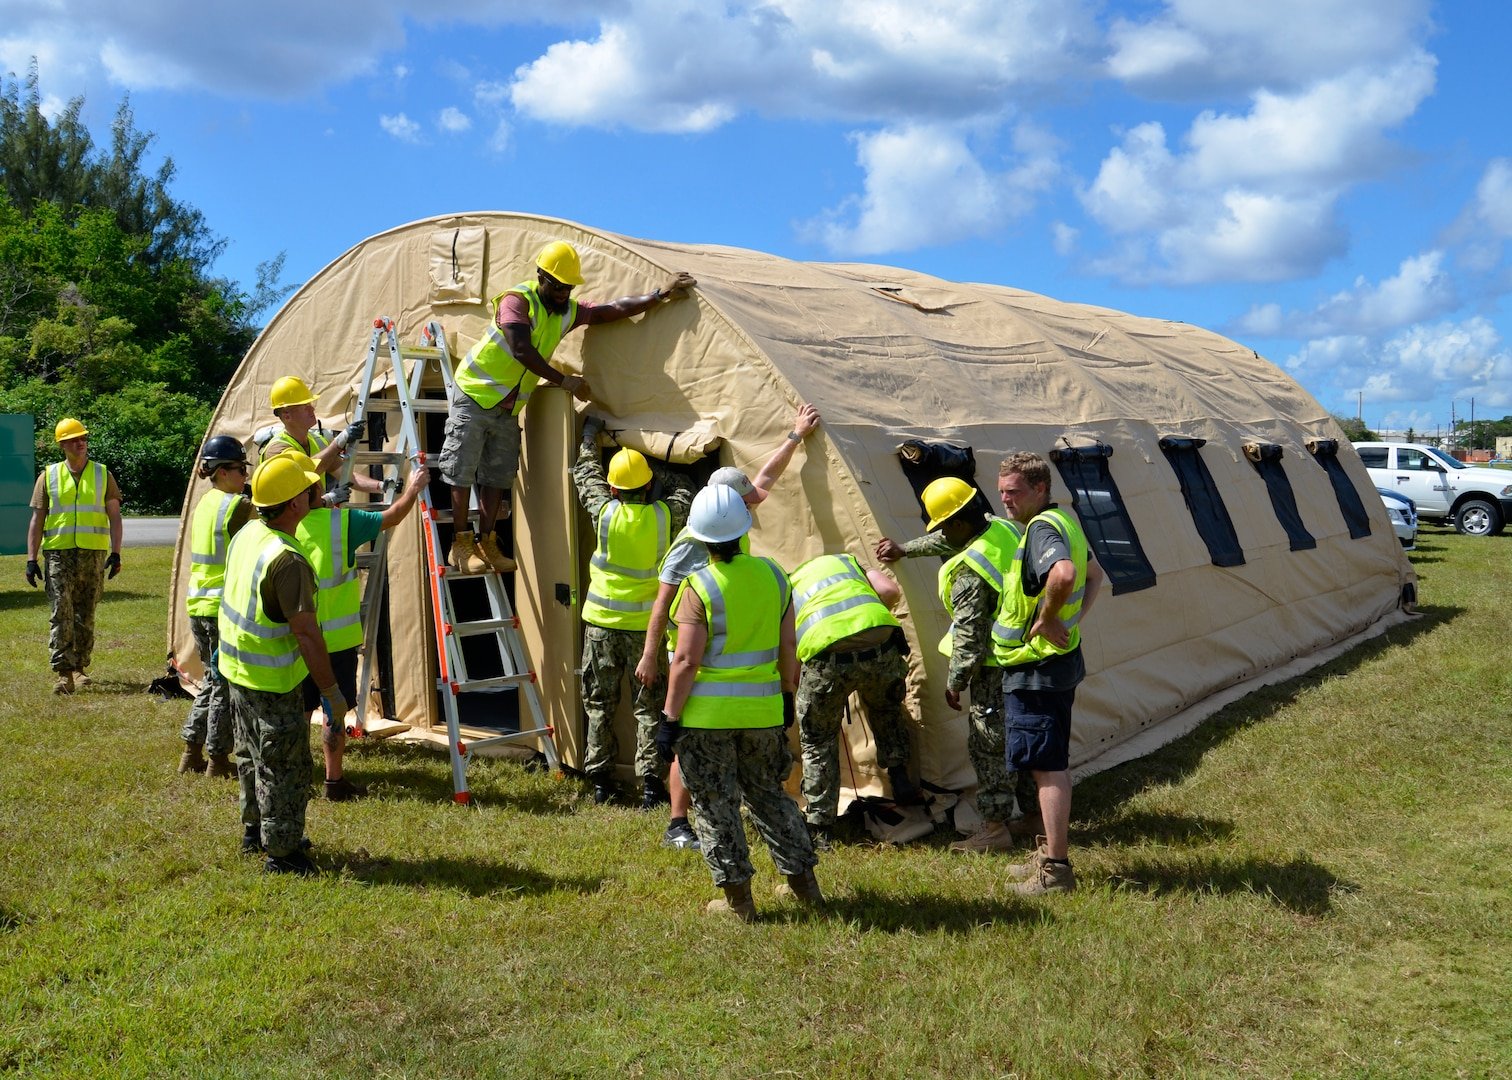 Several people wearing hard hats and safety vest work on putting up a tent. the tent is shaped like a Quonset hut